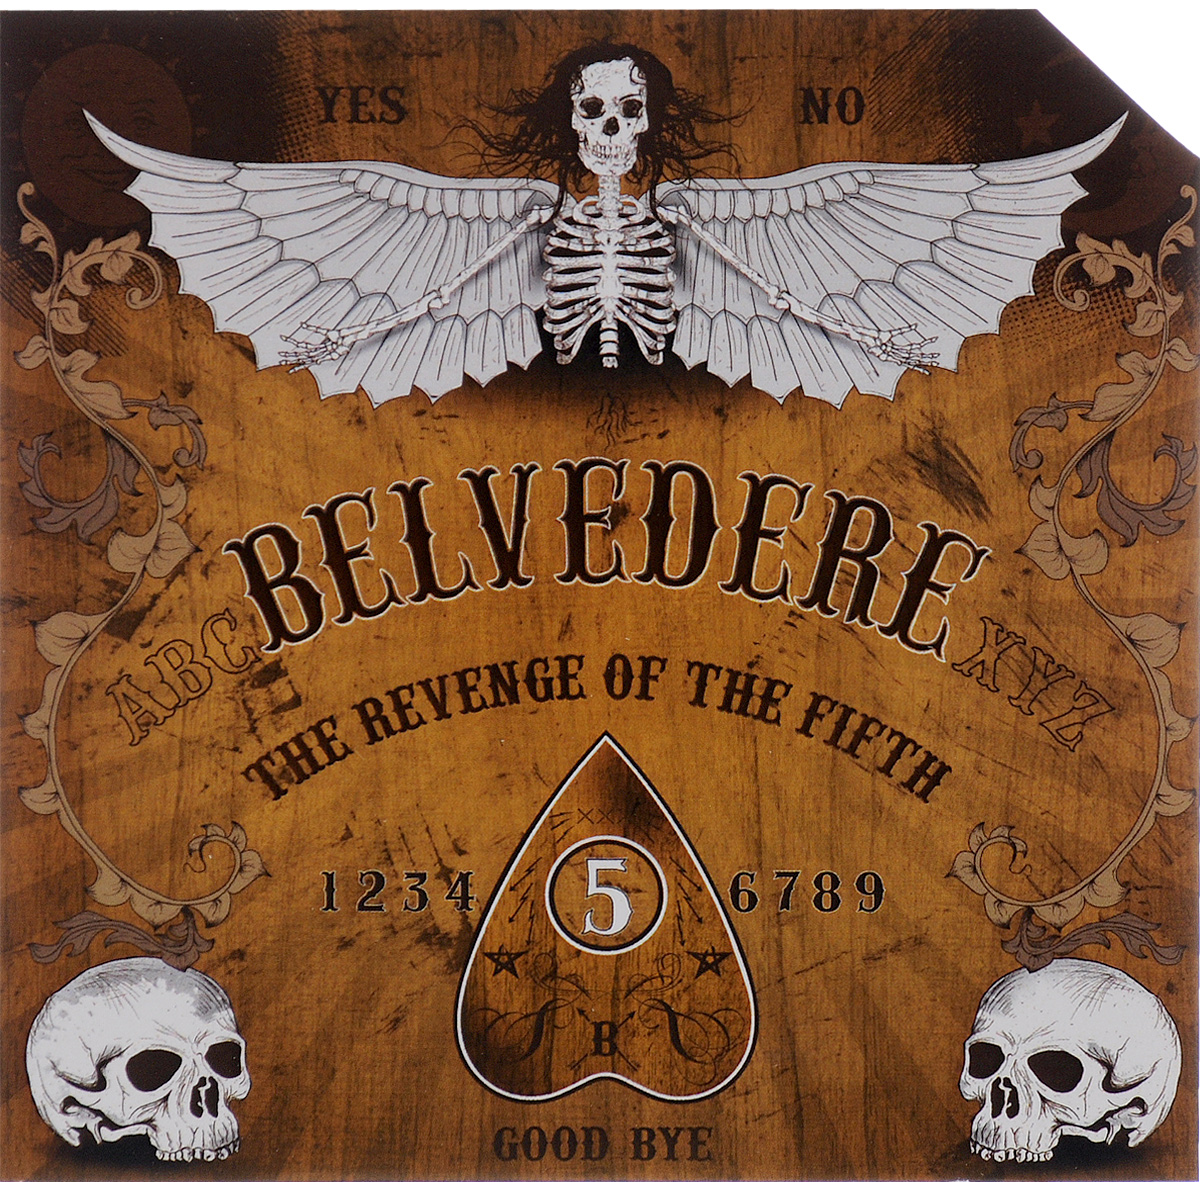 Belvedere Belvedere. The Revenge Of Fifth